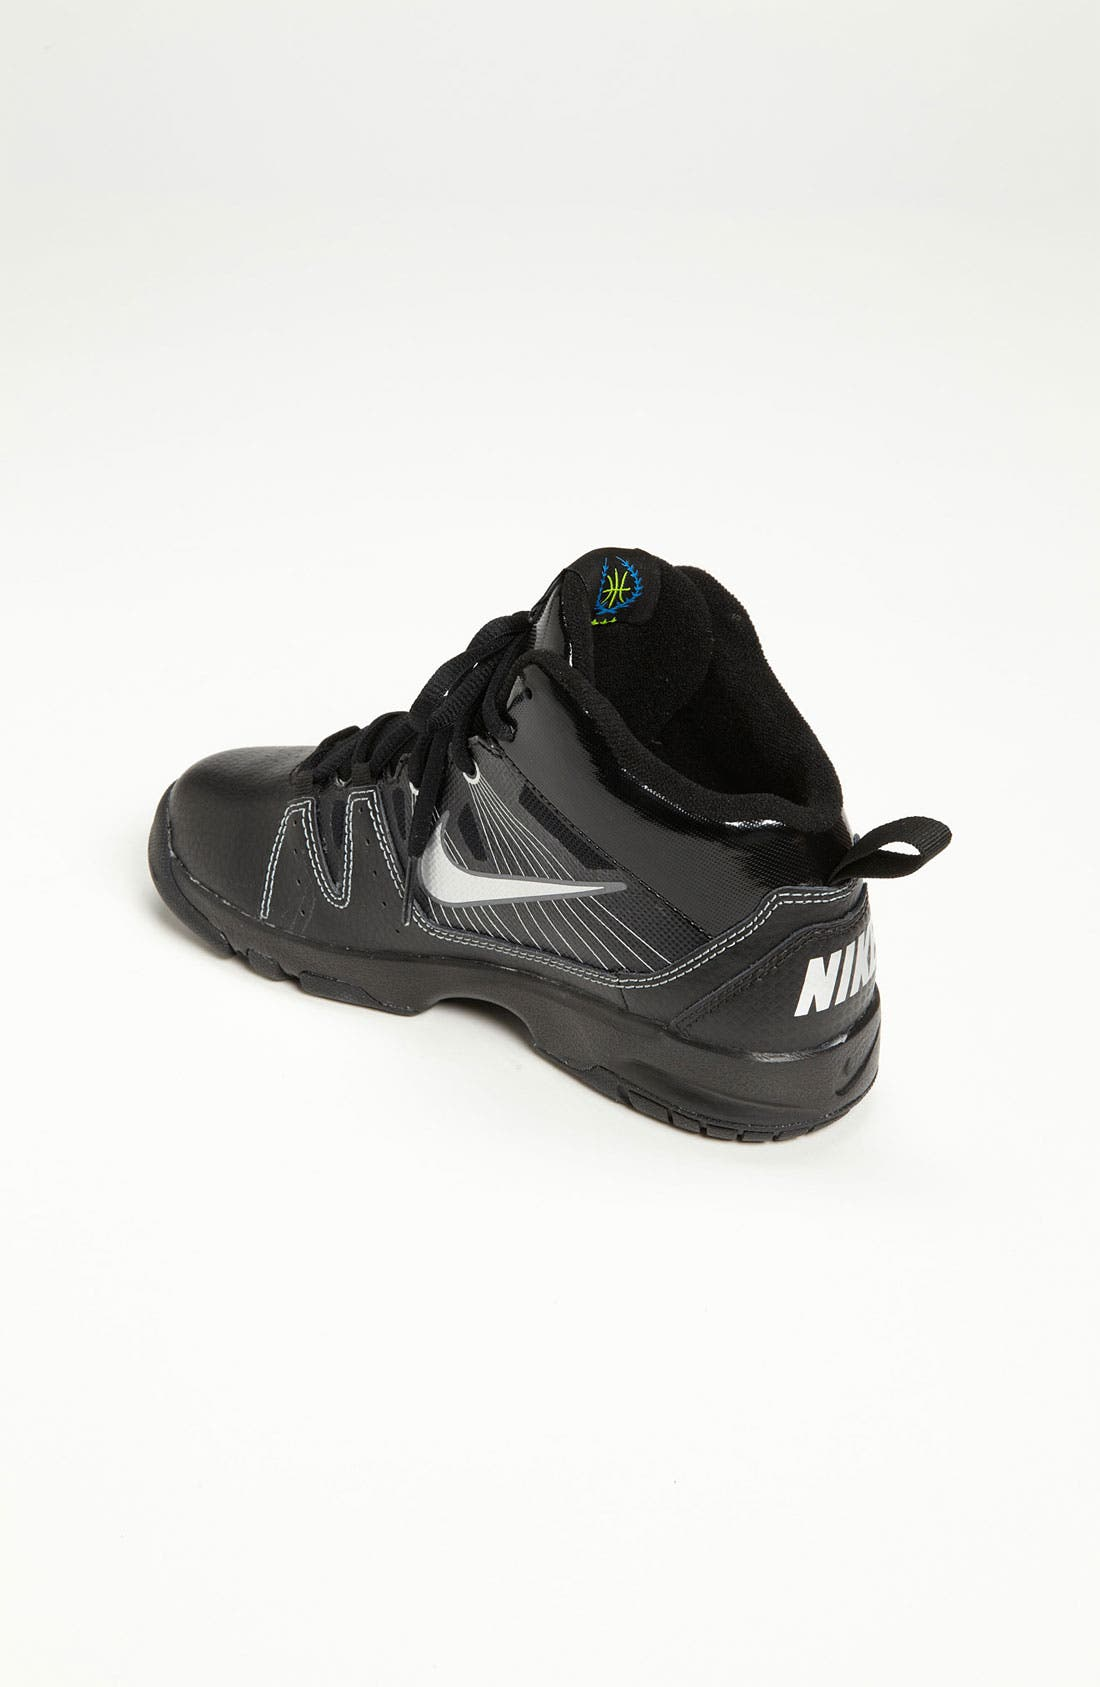 Alternate Image 2  - Nike 'Flight Jab Step' Basketball Shoe (Toddler, Little Kid & Big Kid)